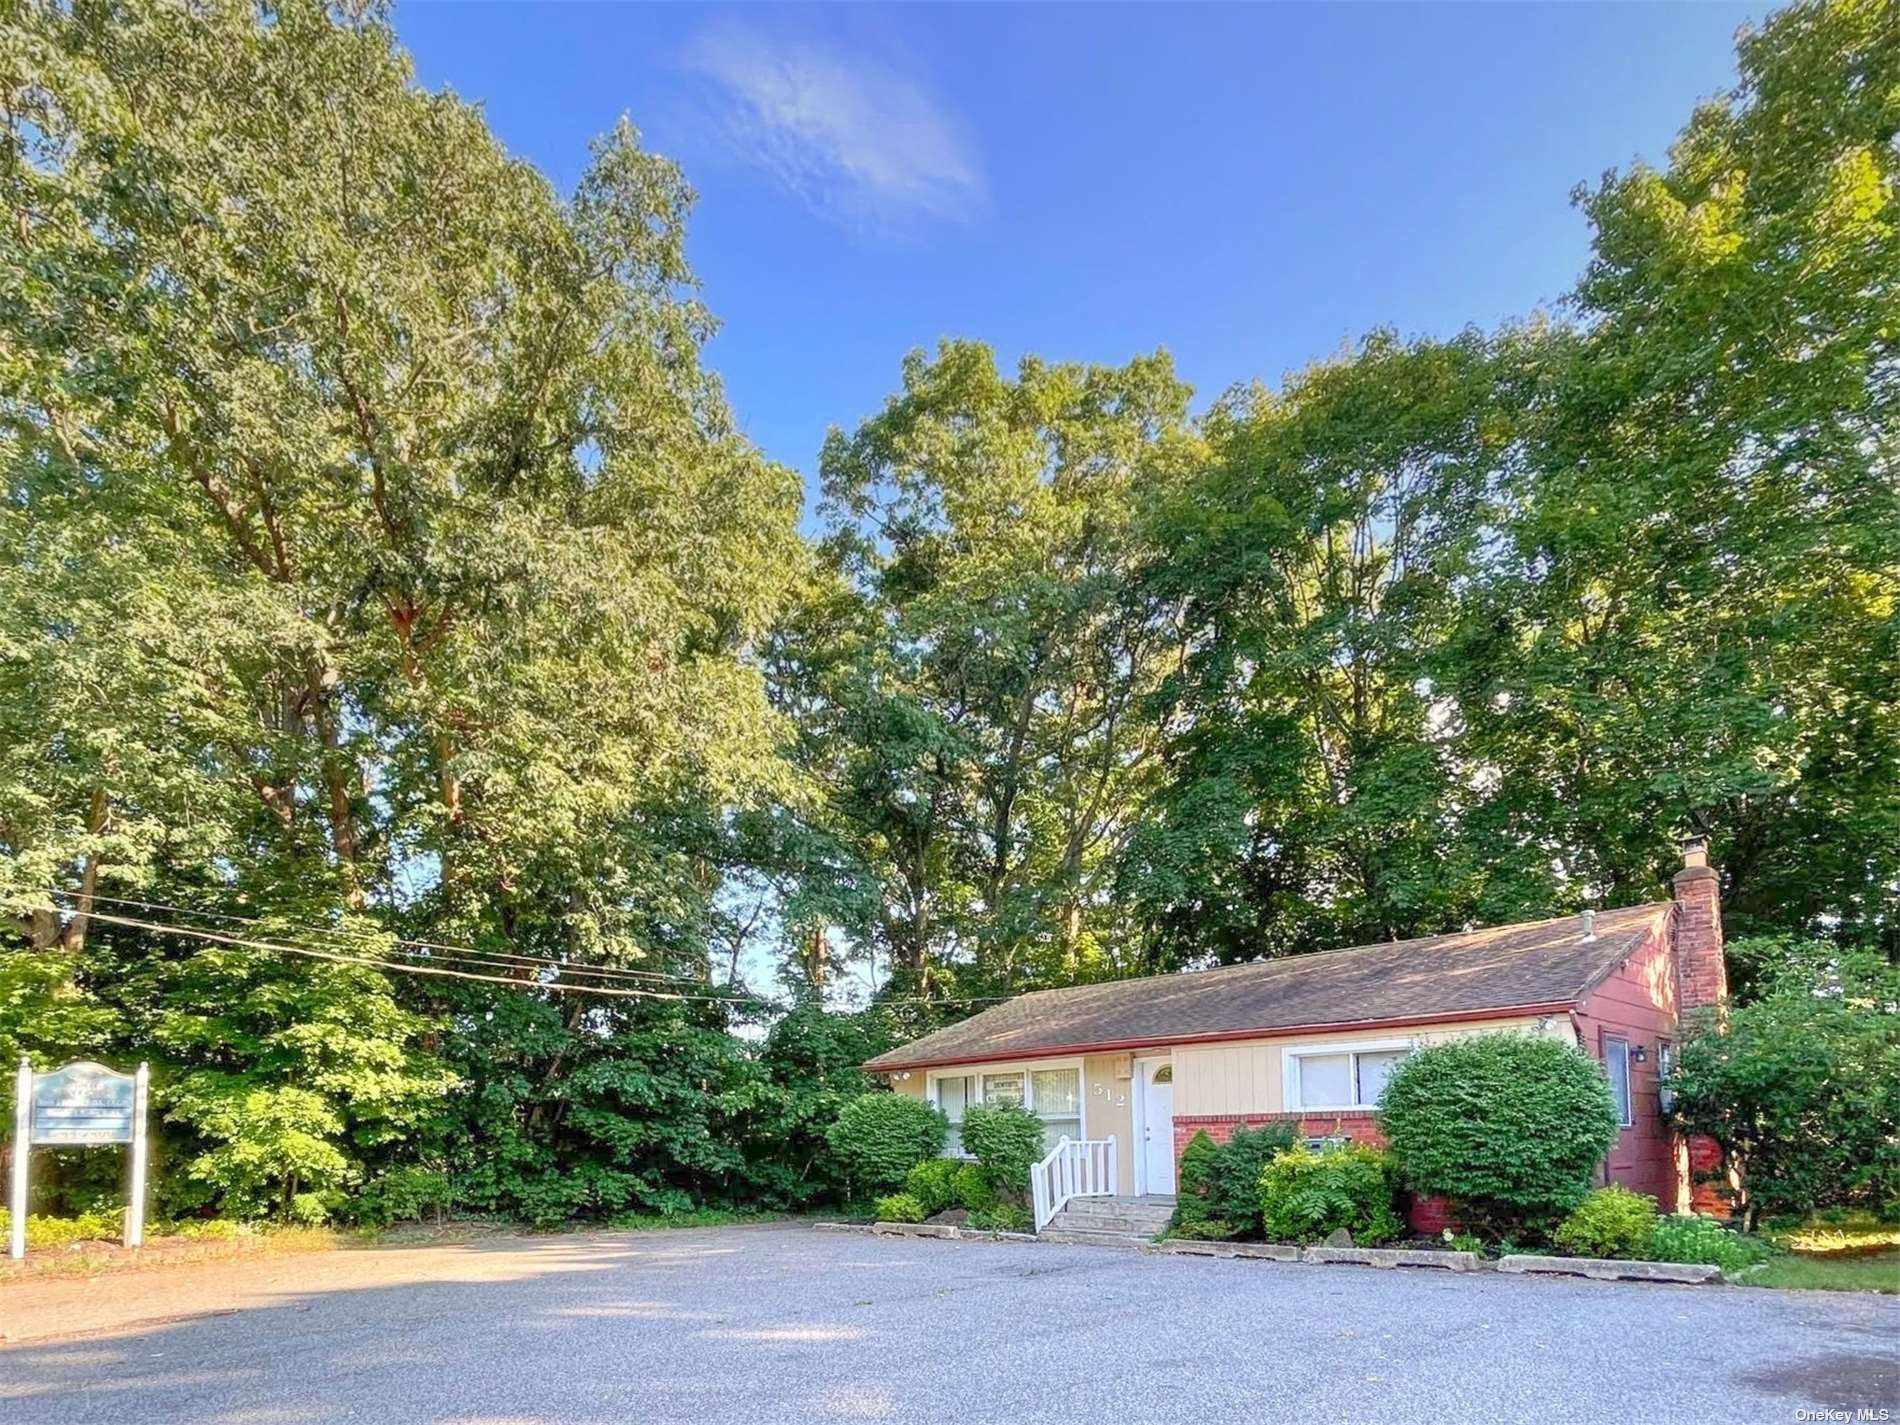 512 N Country Road, Miller Place, NY 11764 - MLS#: 3300736